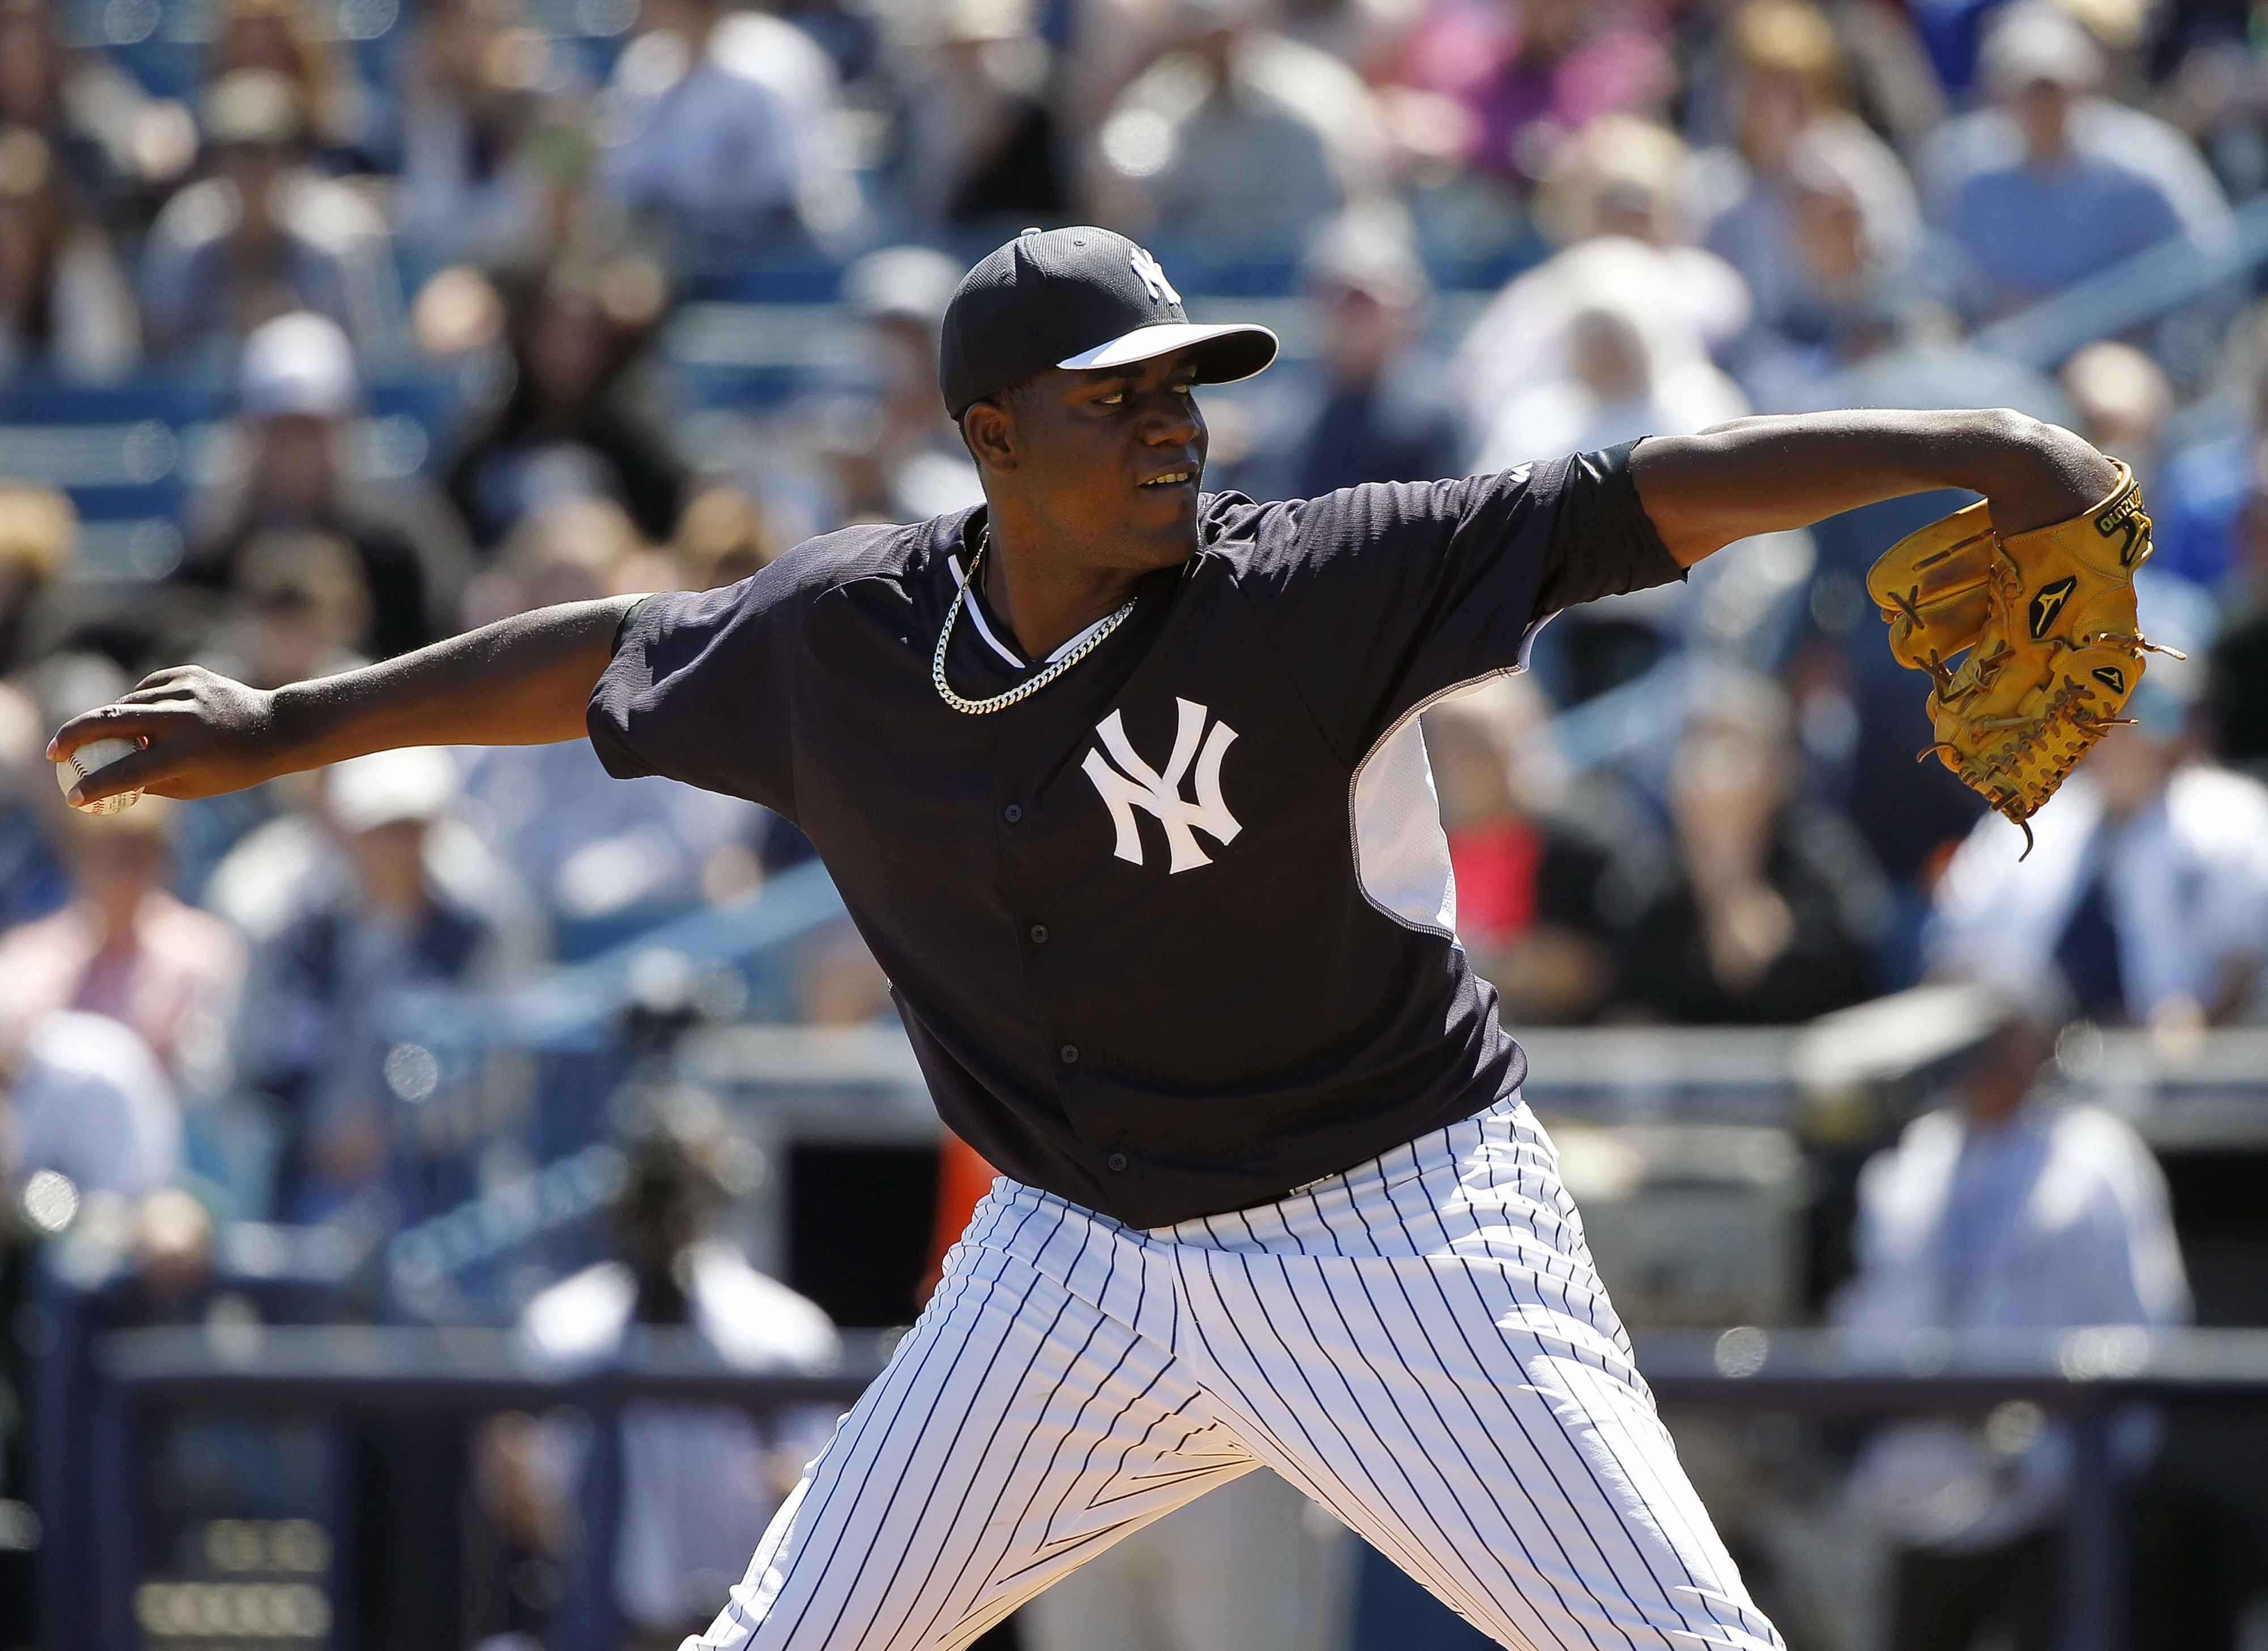 Yankees plan to hold Michael Pineda to an innings limit